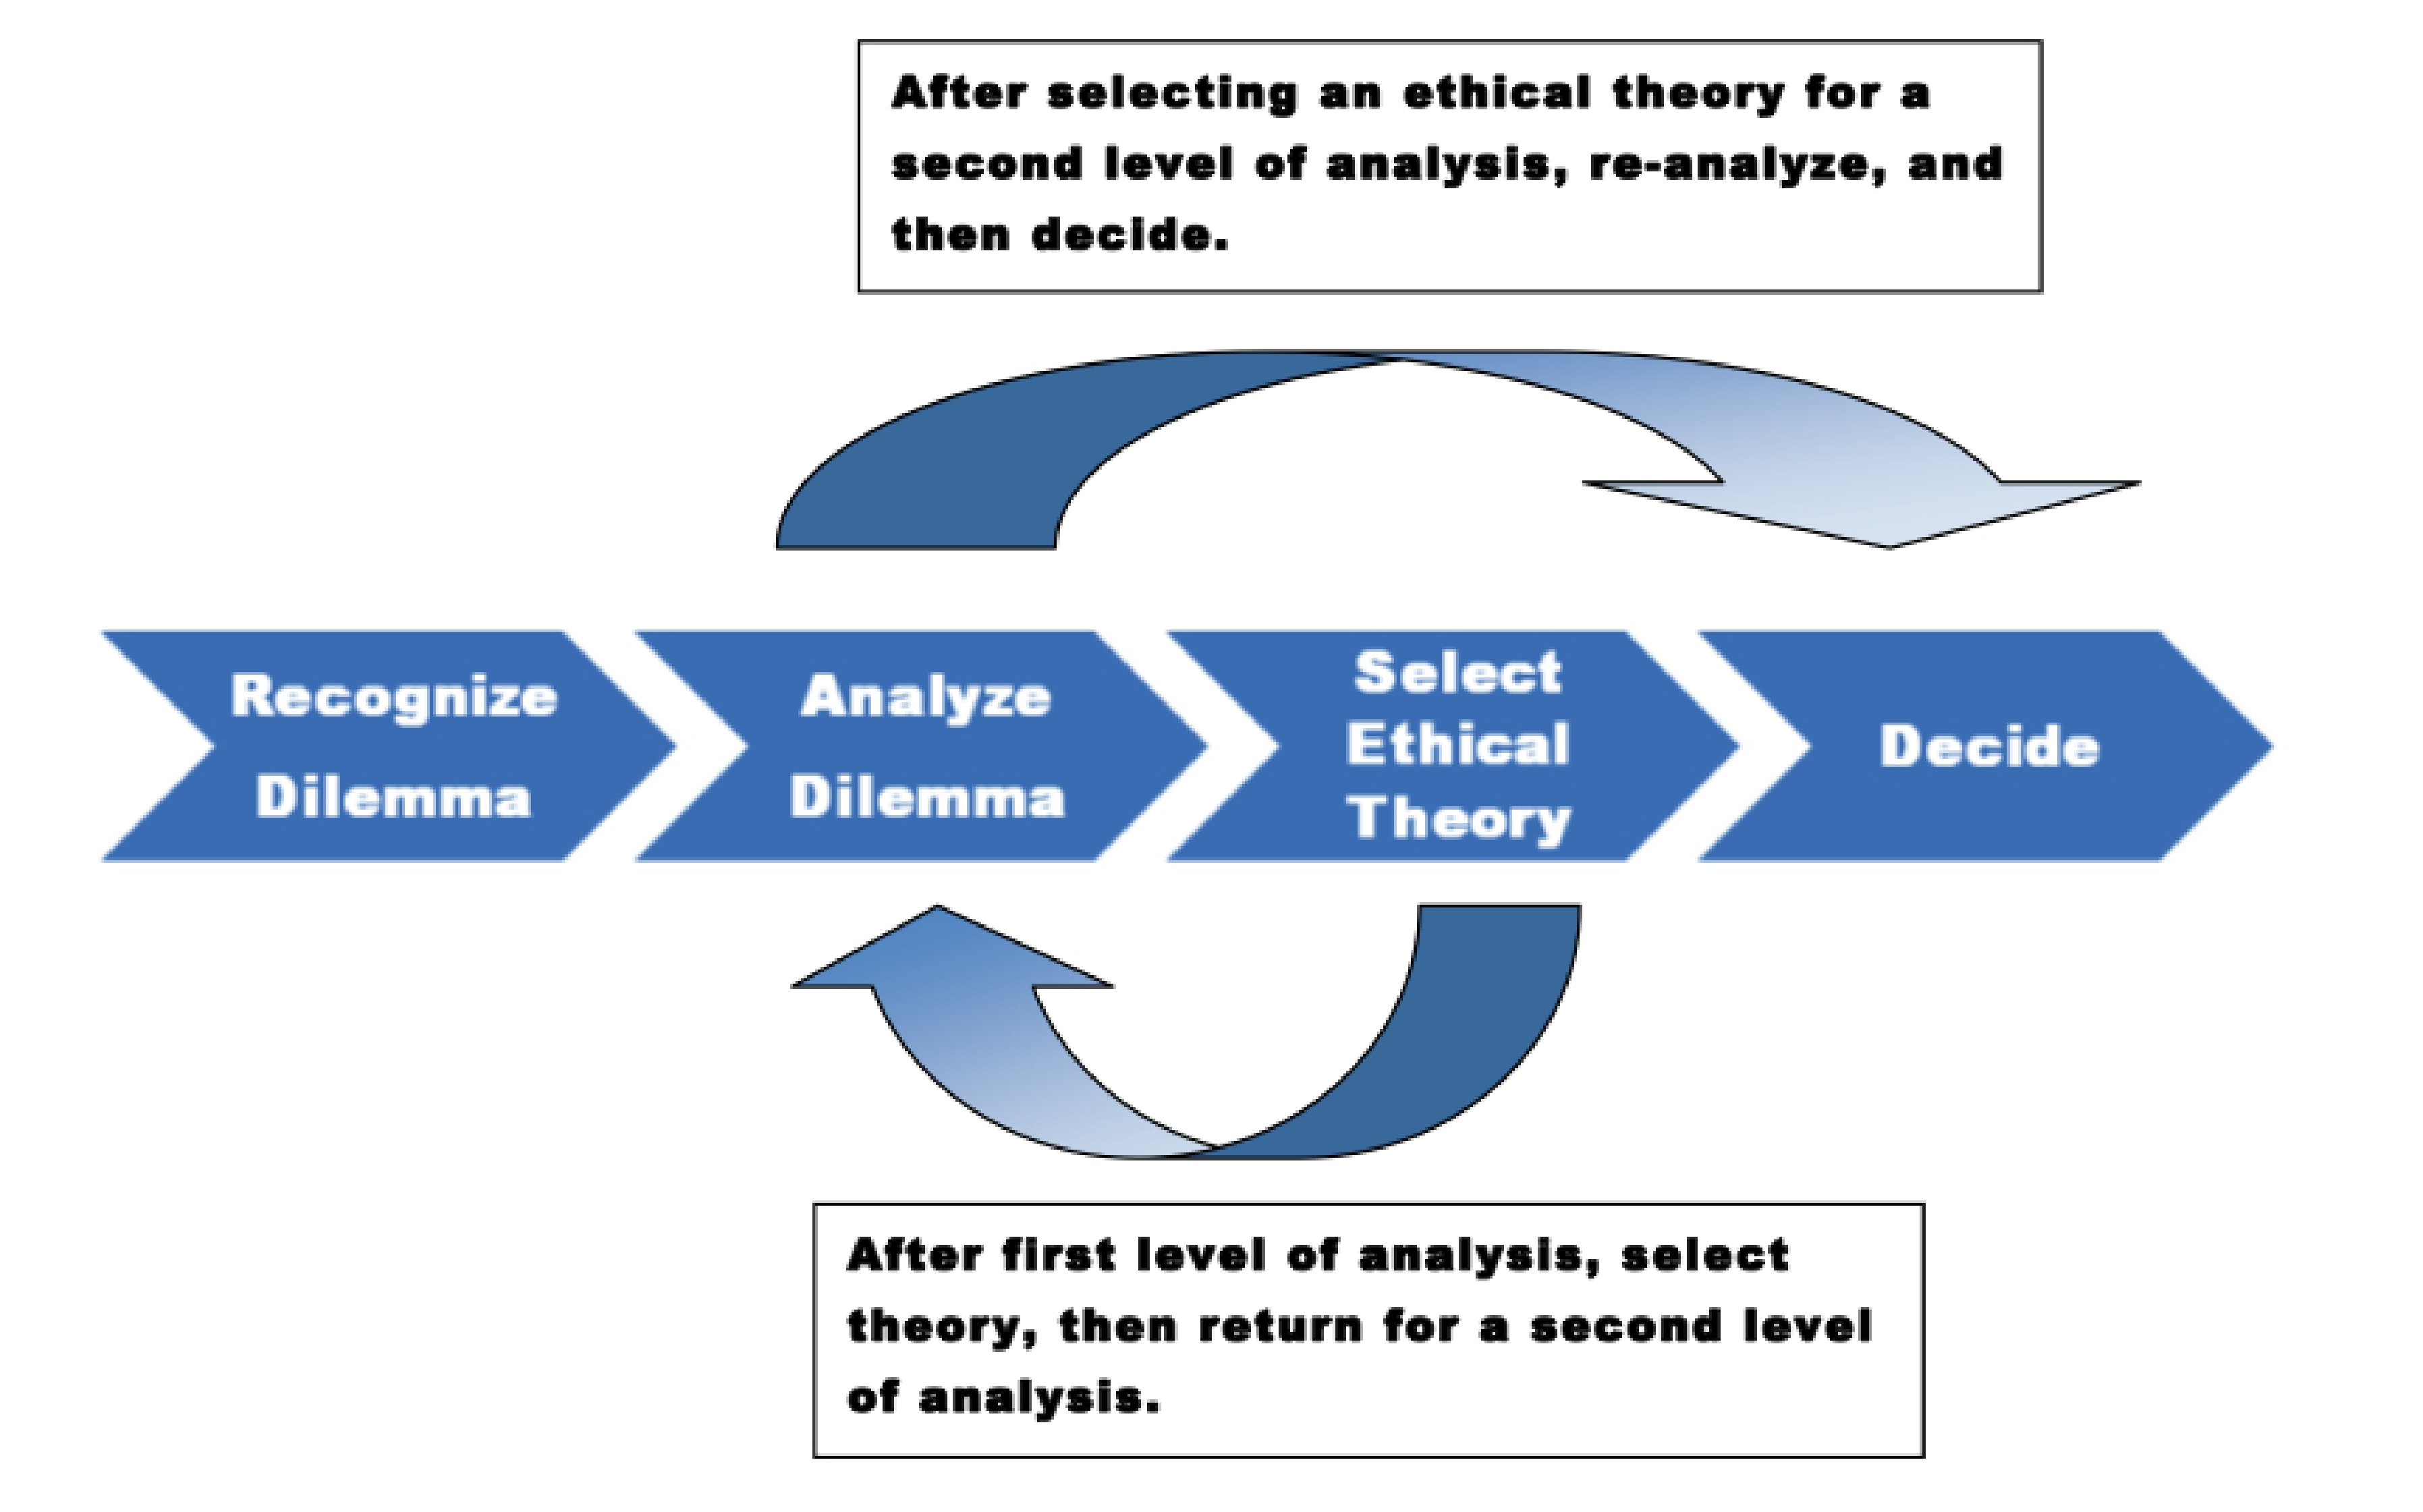 Crisis Management and Ethical Decision Making by Jessica Flareau on